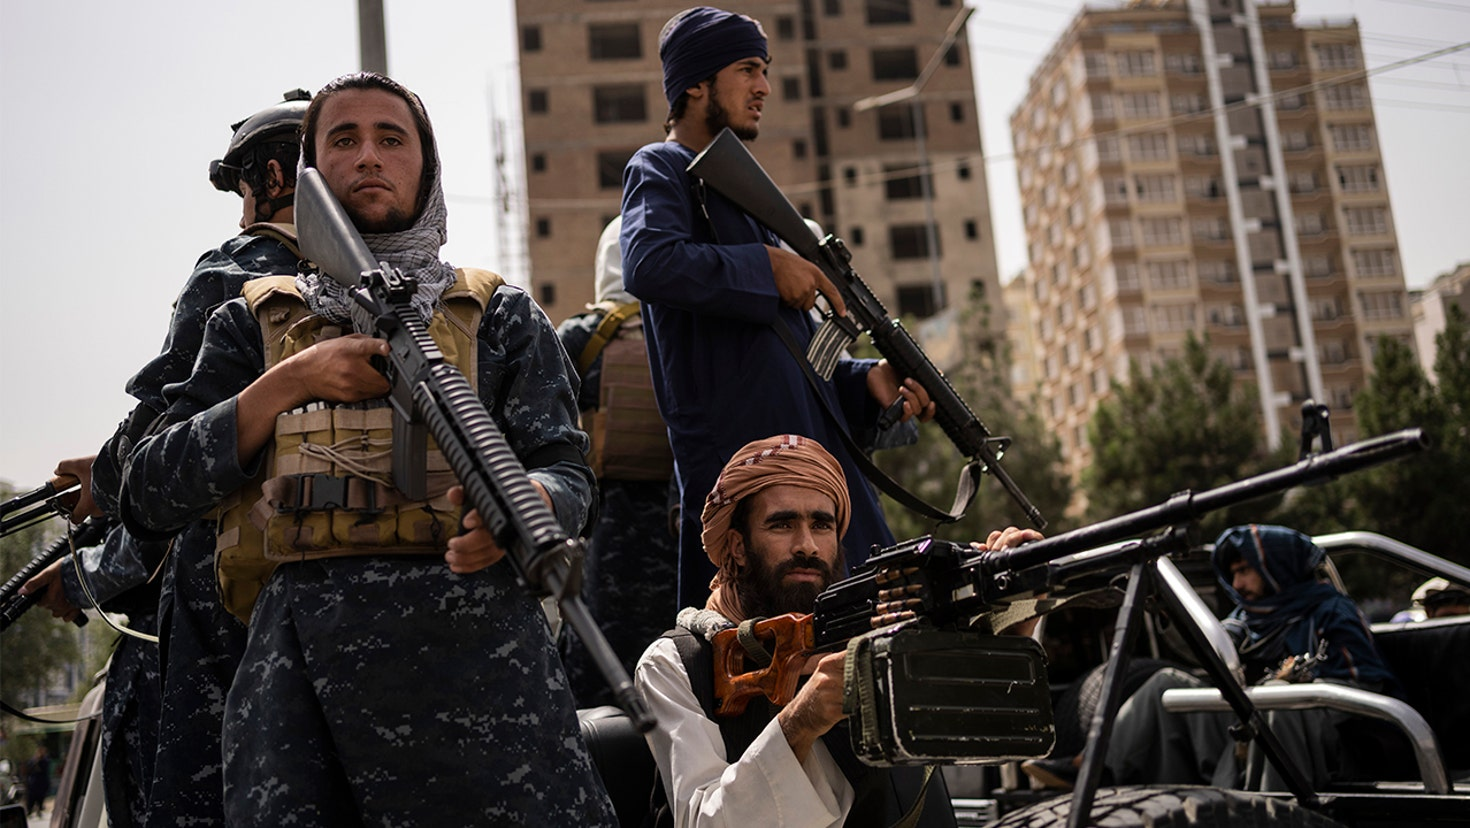 New York City Man Charged in Joining With Taliban to Fight U.S.